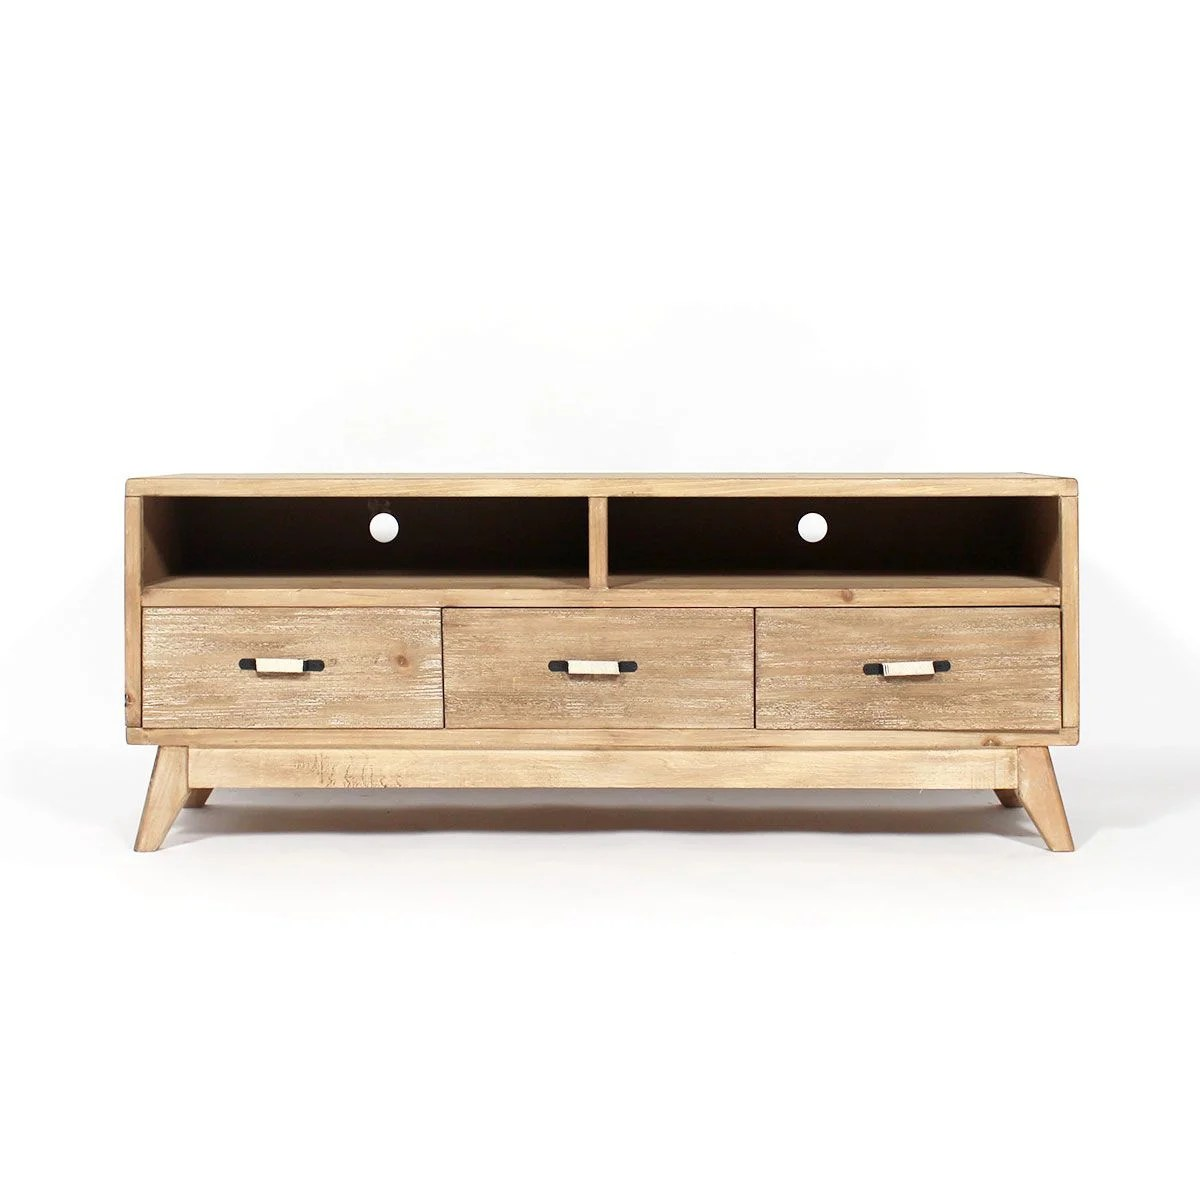 Meuble Tv Mdf Patine Bois Brosse 2 Niches 3 Tiroirs Bois Made In Meubles La Redoute